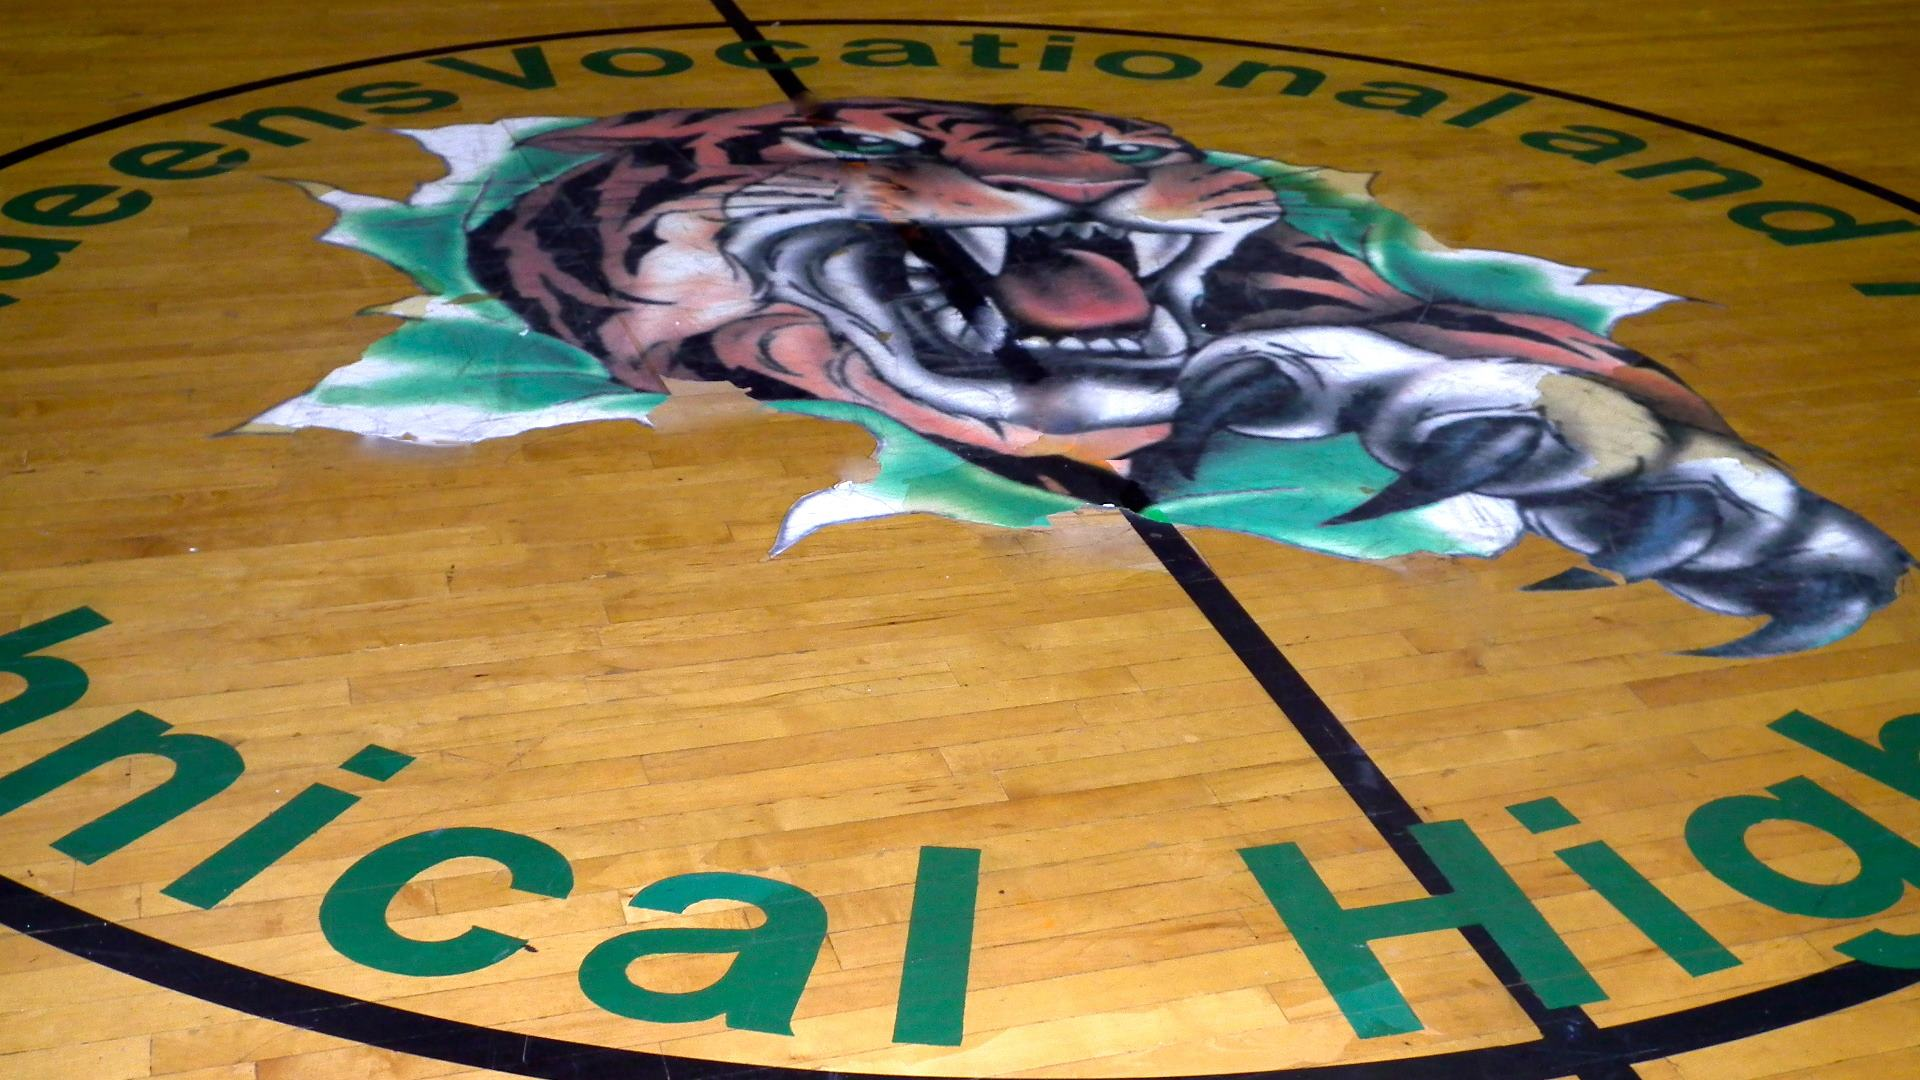 Tiger mascot on the gym floor